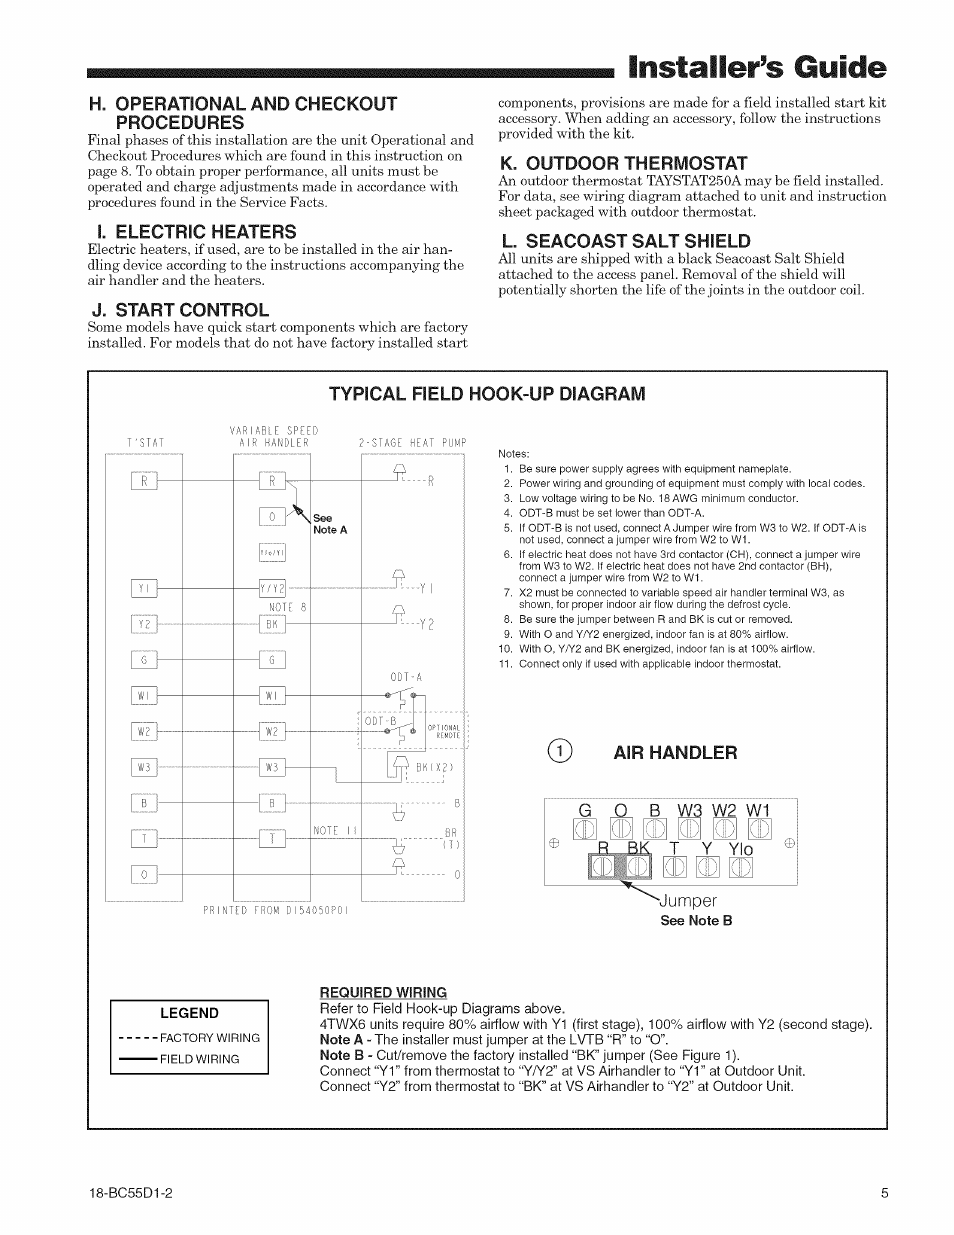 I. electric heaters, J. start control, K. outdoor thermostat | Trane  18-BC55D1-2 User Manual | Page 5 / 8